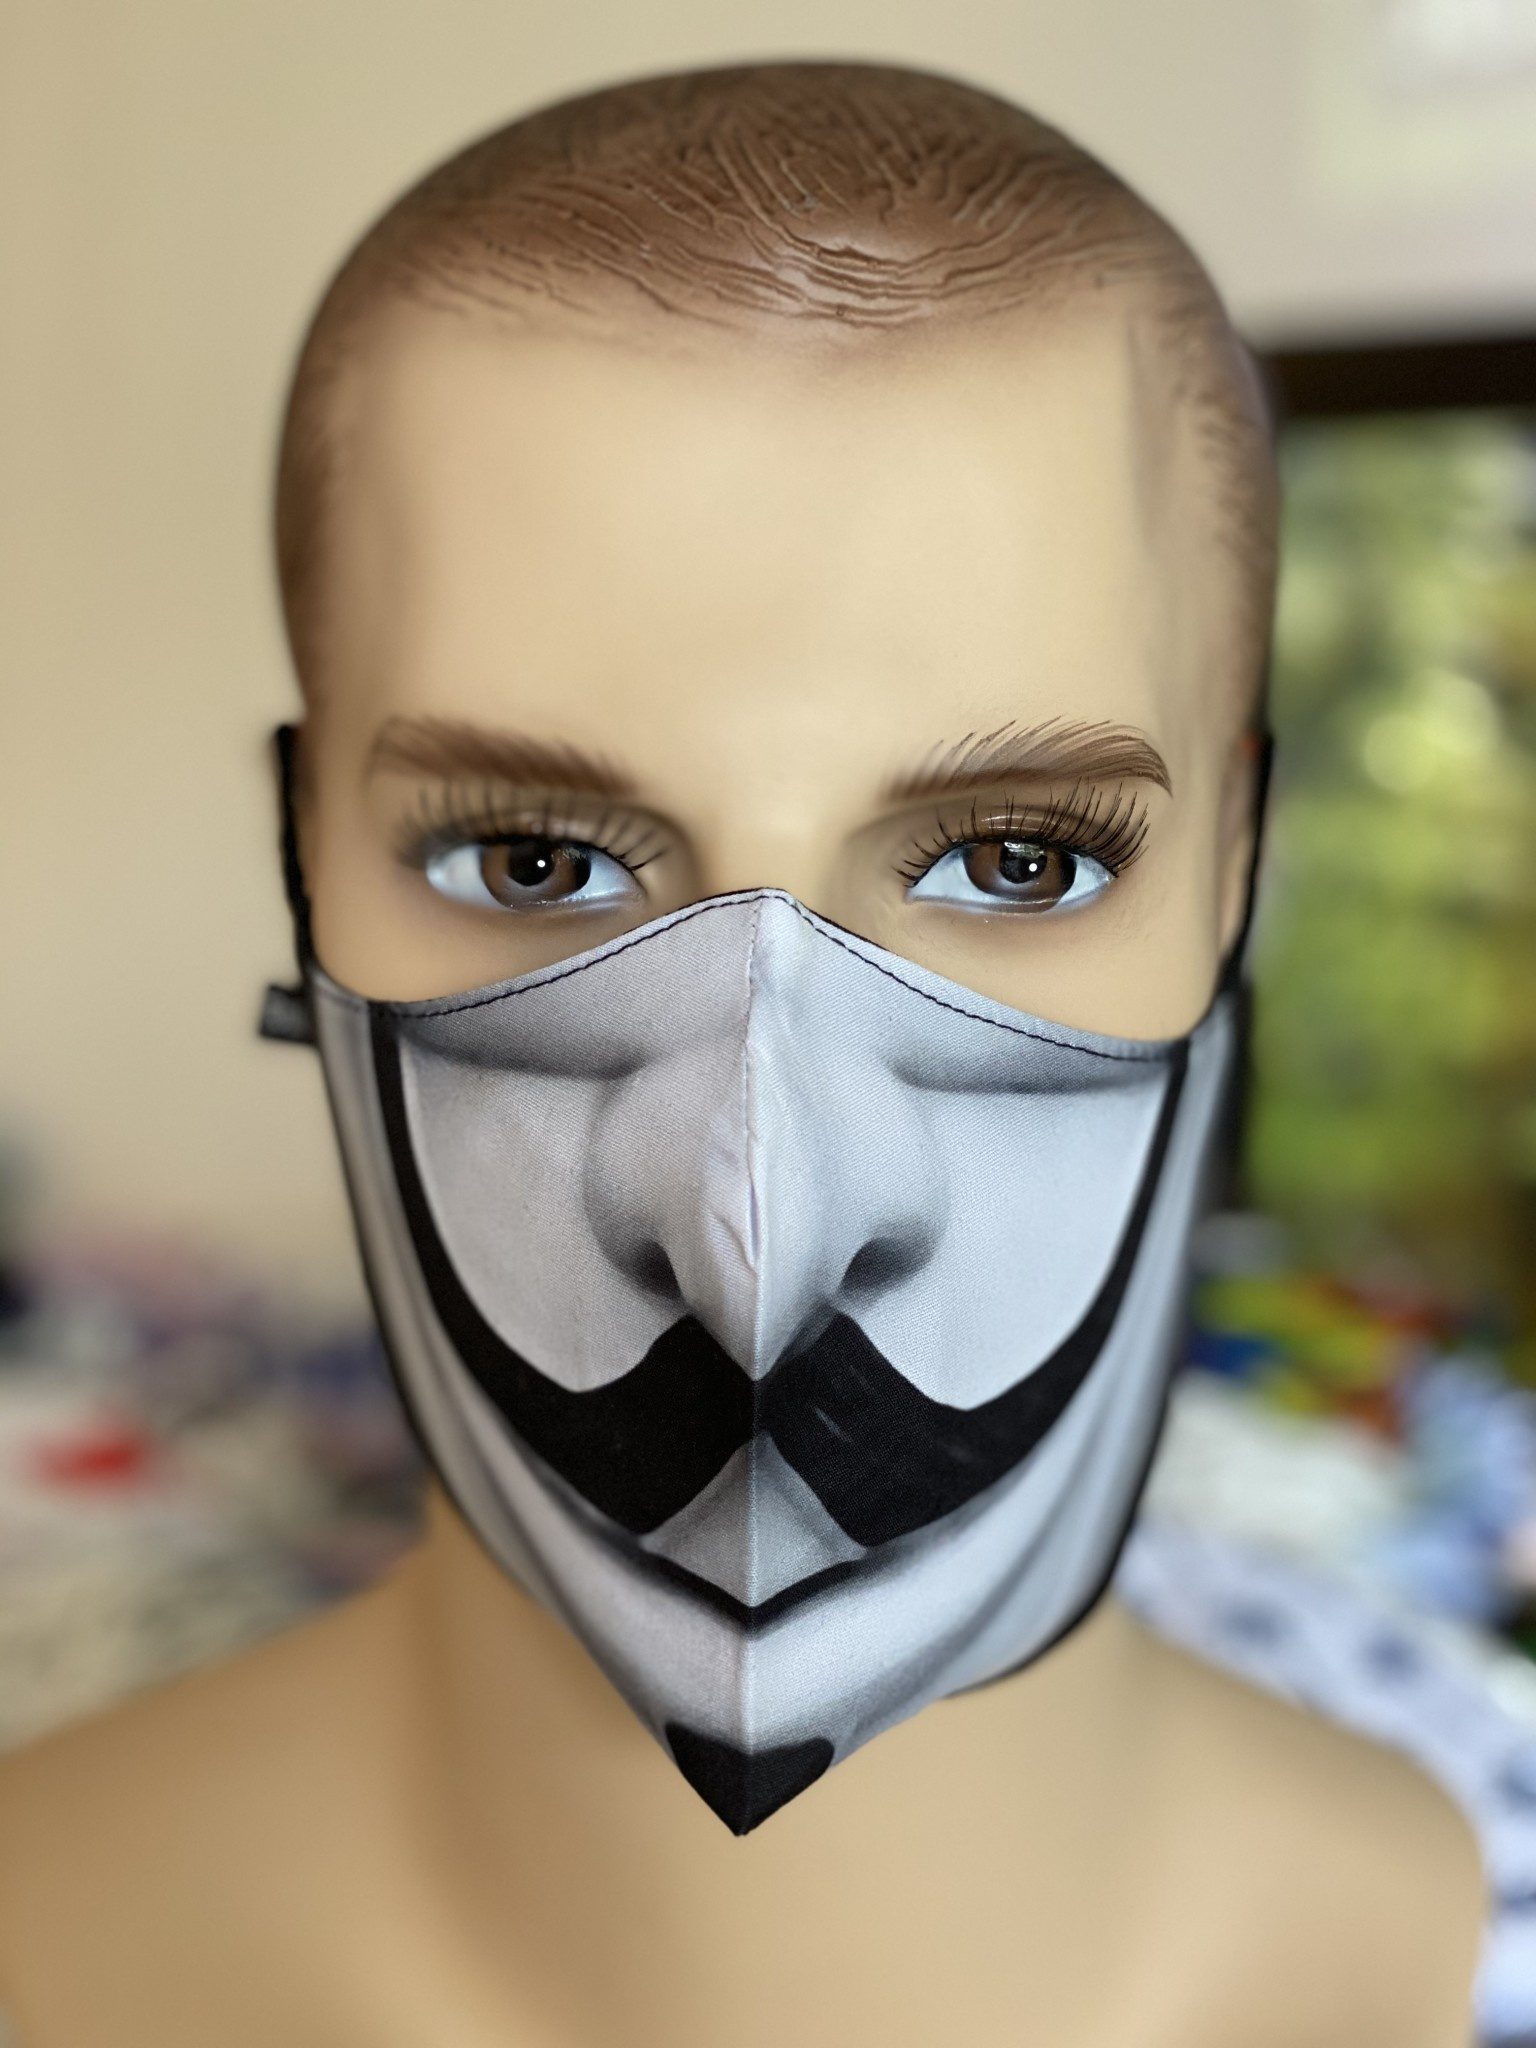 Face Mask, Which one is you?  V 4 Vendetta